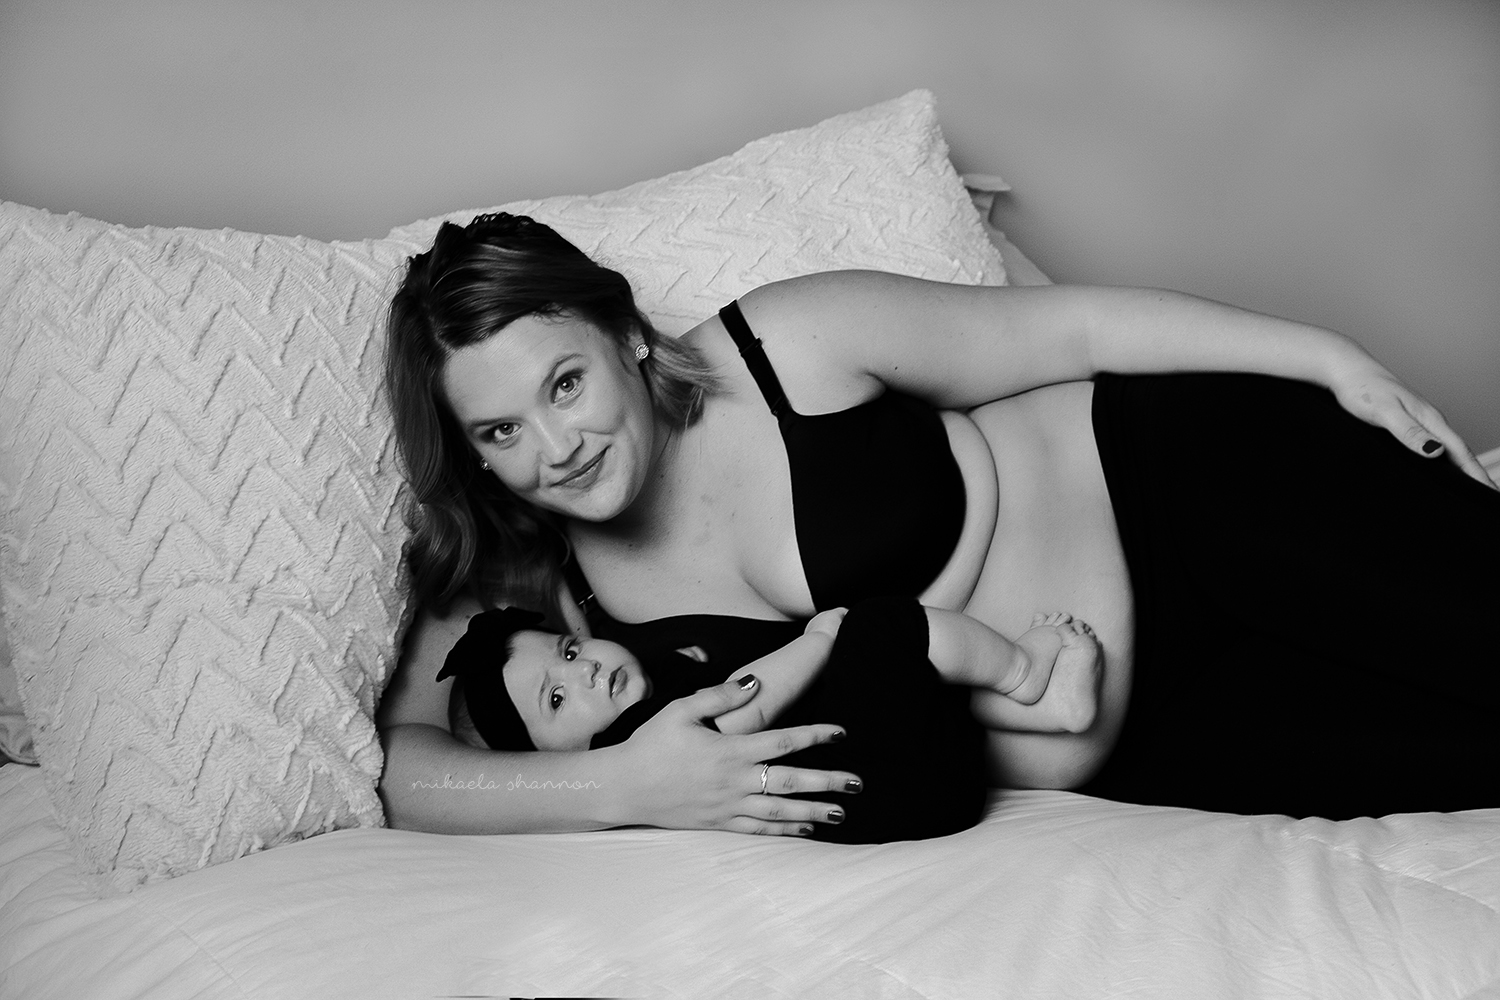 Raising awareness for postpartum love and inspiring women to love and embrace their postpartum bodies after pregnancy. #LoveYourPostpartum